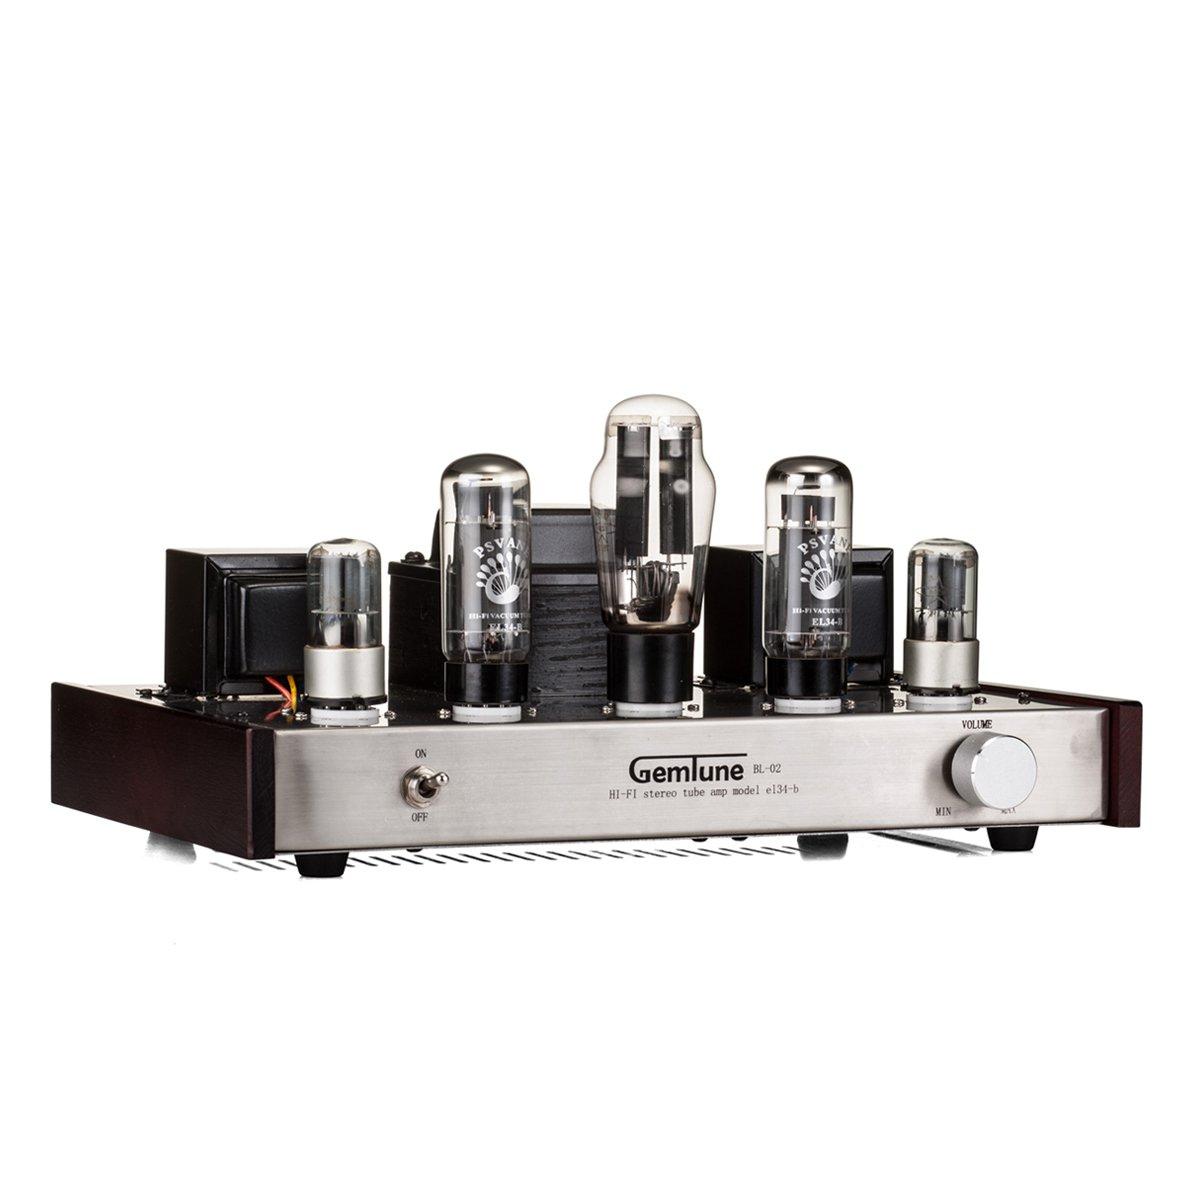 GemTune BL-02 Class A Integrated tube amplifier with tube 5Z3PX1,EL34-BX2,6N9PX2 Tube by GemTune